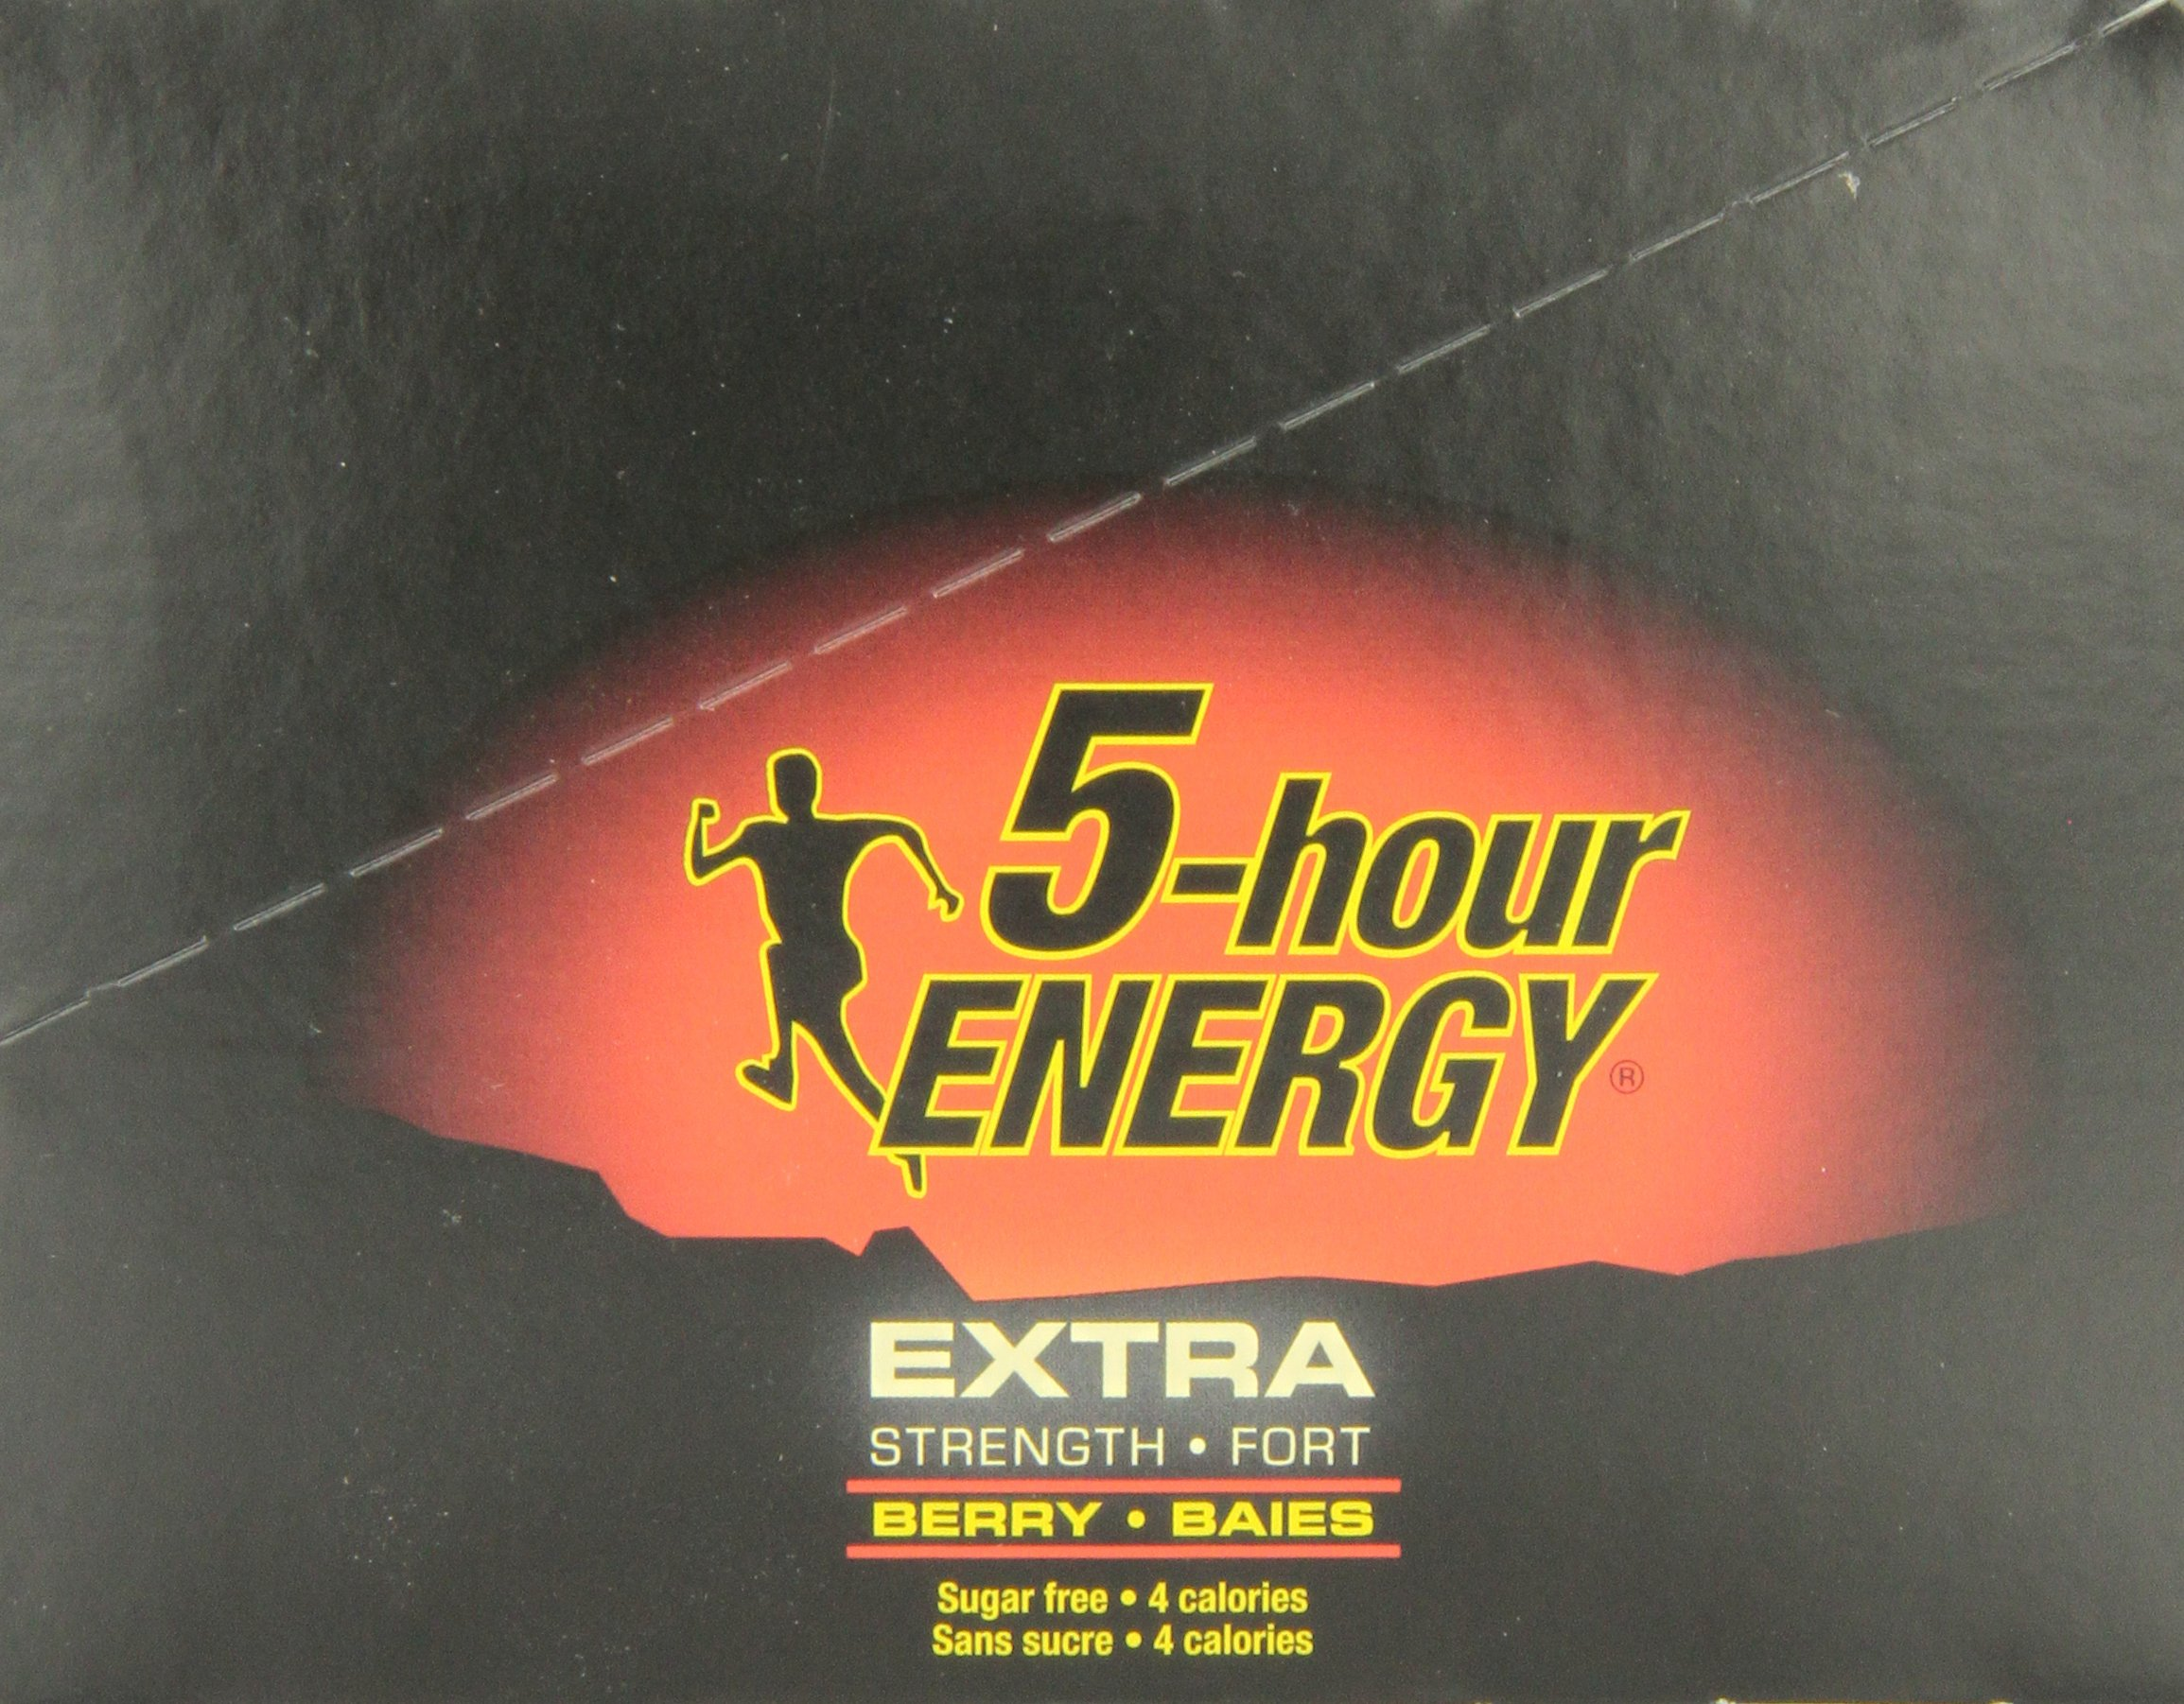 12 Pack of 5 Hour Energy and 12 Pack of 5 Hour Extra Strength, Combo Pack, 1.93 Fluid Ounces Box (Pack of 24) by 5 Hour Energy (Image #8)